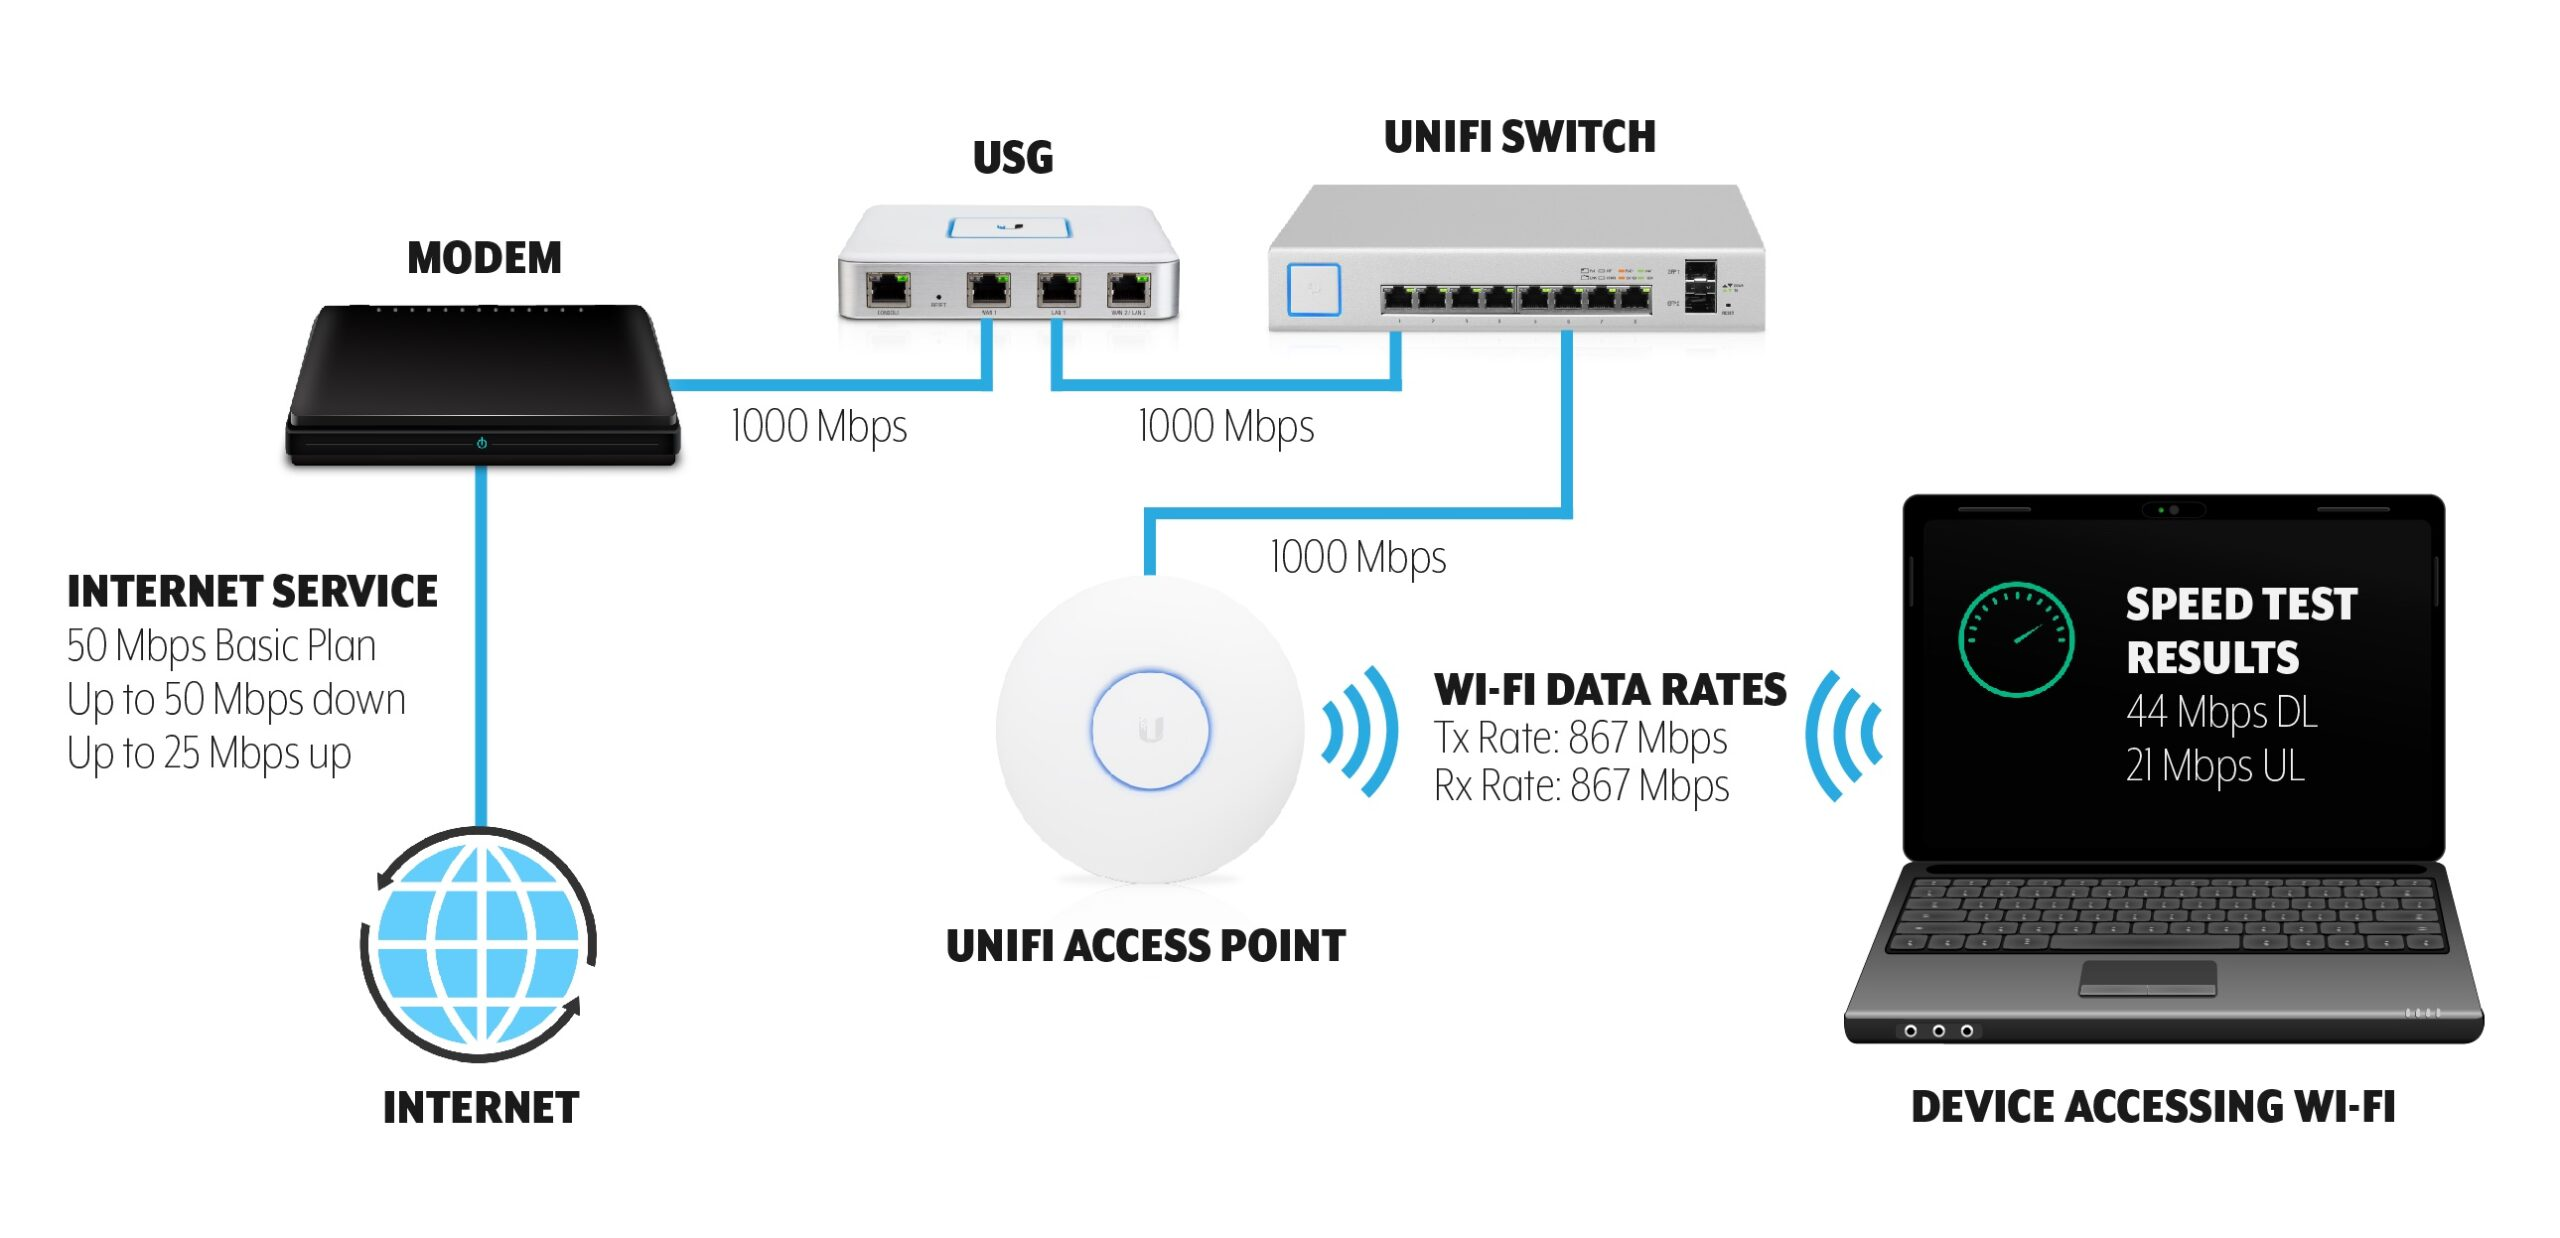 Identify any bottlenecks in your network are one of the first task that you can do when troubleshooting Slow Wi-Fi Speeds on UniFi